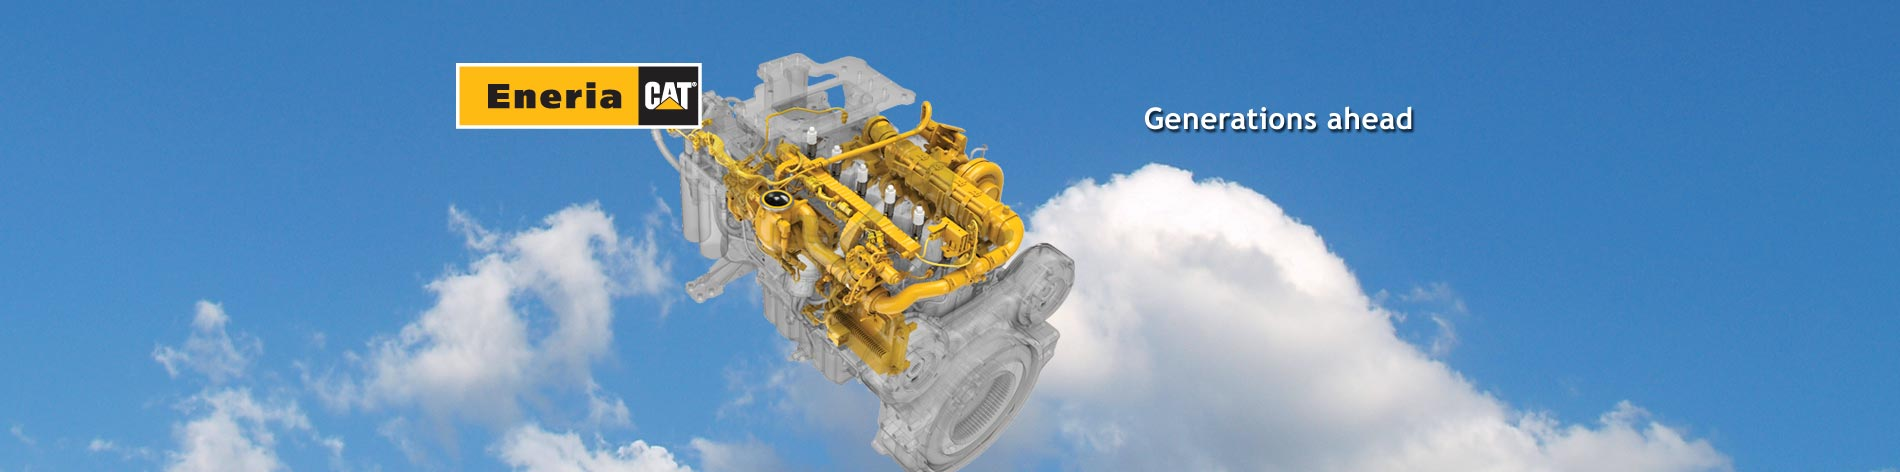 Building on decades of innovation and expertise in the field of diesel engines, Caterpillar is ahead of the game and offers the best technology.